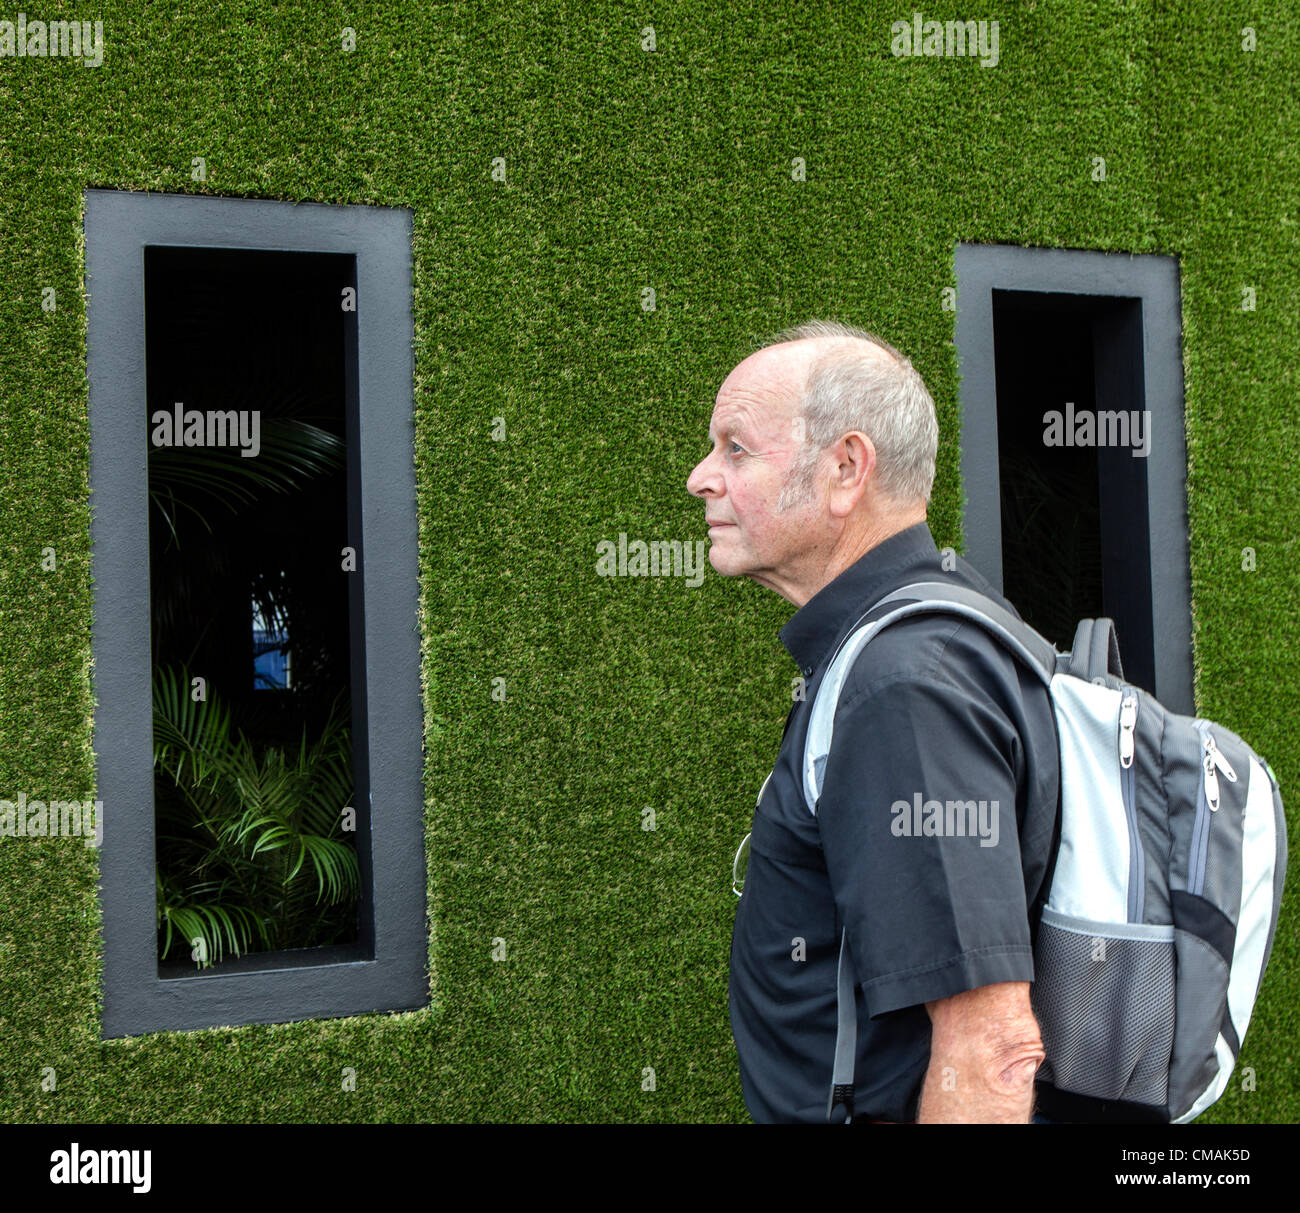 Hampton Court, UK. Wednesday 4th July 2012.  Show visitor admires 'Possession' ,a grass covered exhibit - Stock Image